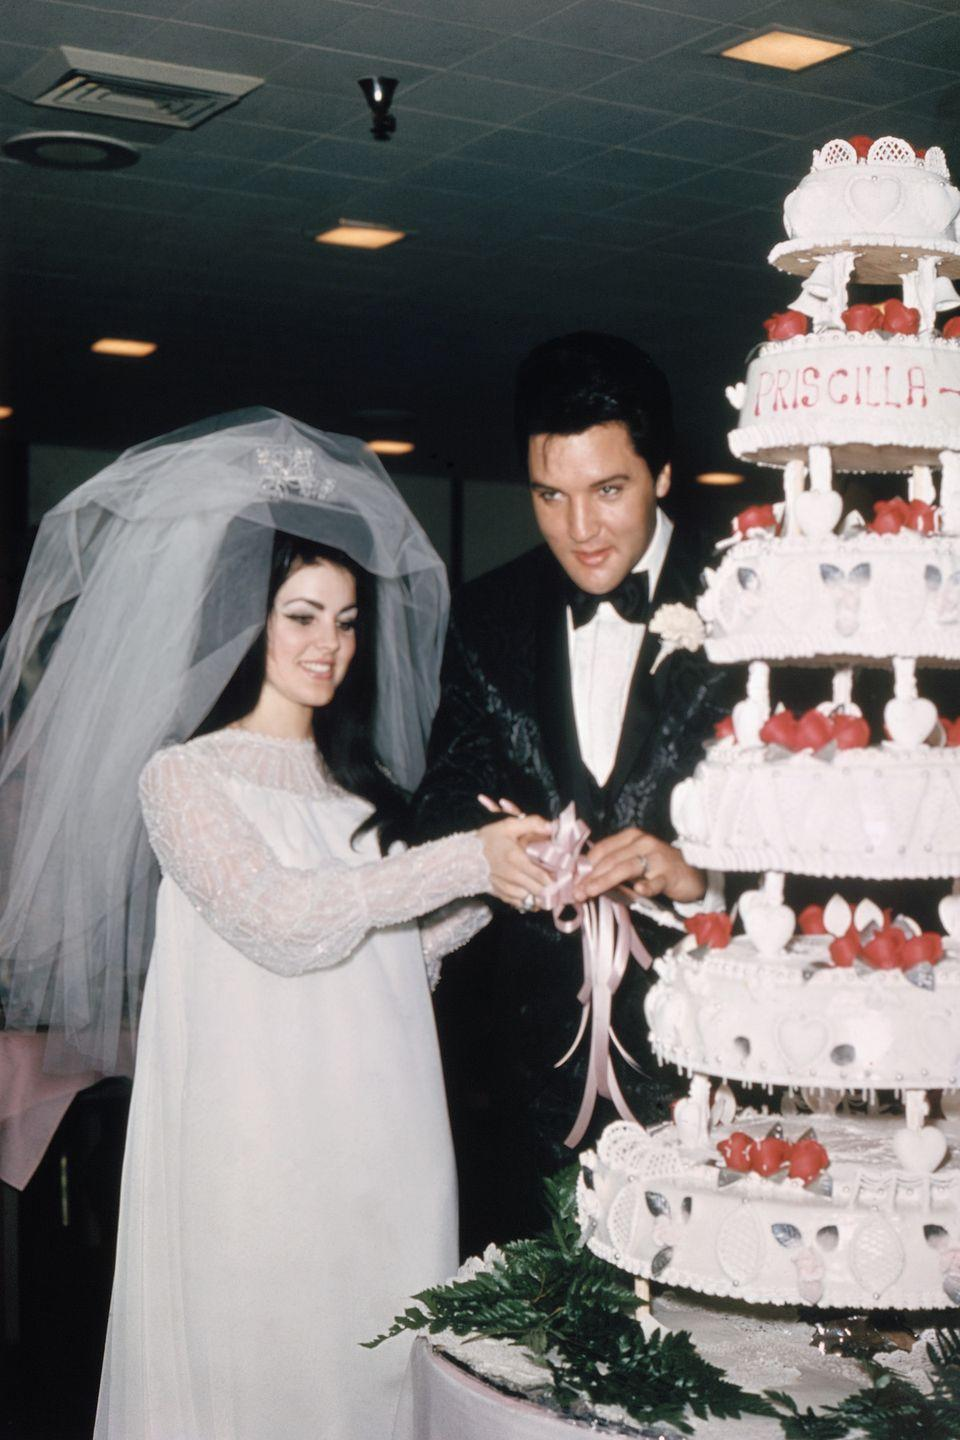 <p>Ready for a big surprise? Elvis Presley's wife Priscilla designed her own dress for the pair's Las Vegas wedding — and it was a dramatic one, featuring chiffon, beads, and a three-foot veil.</p>